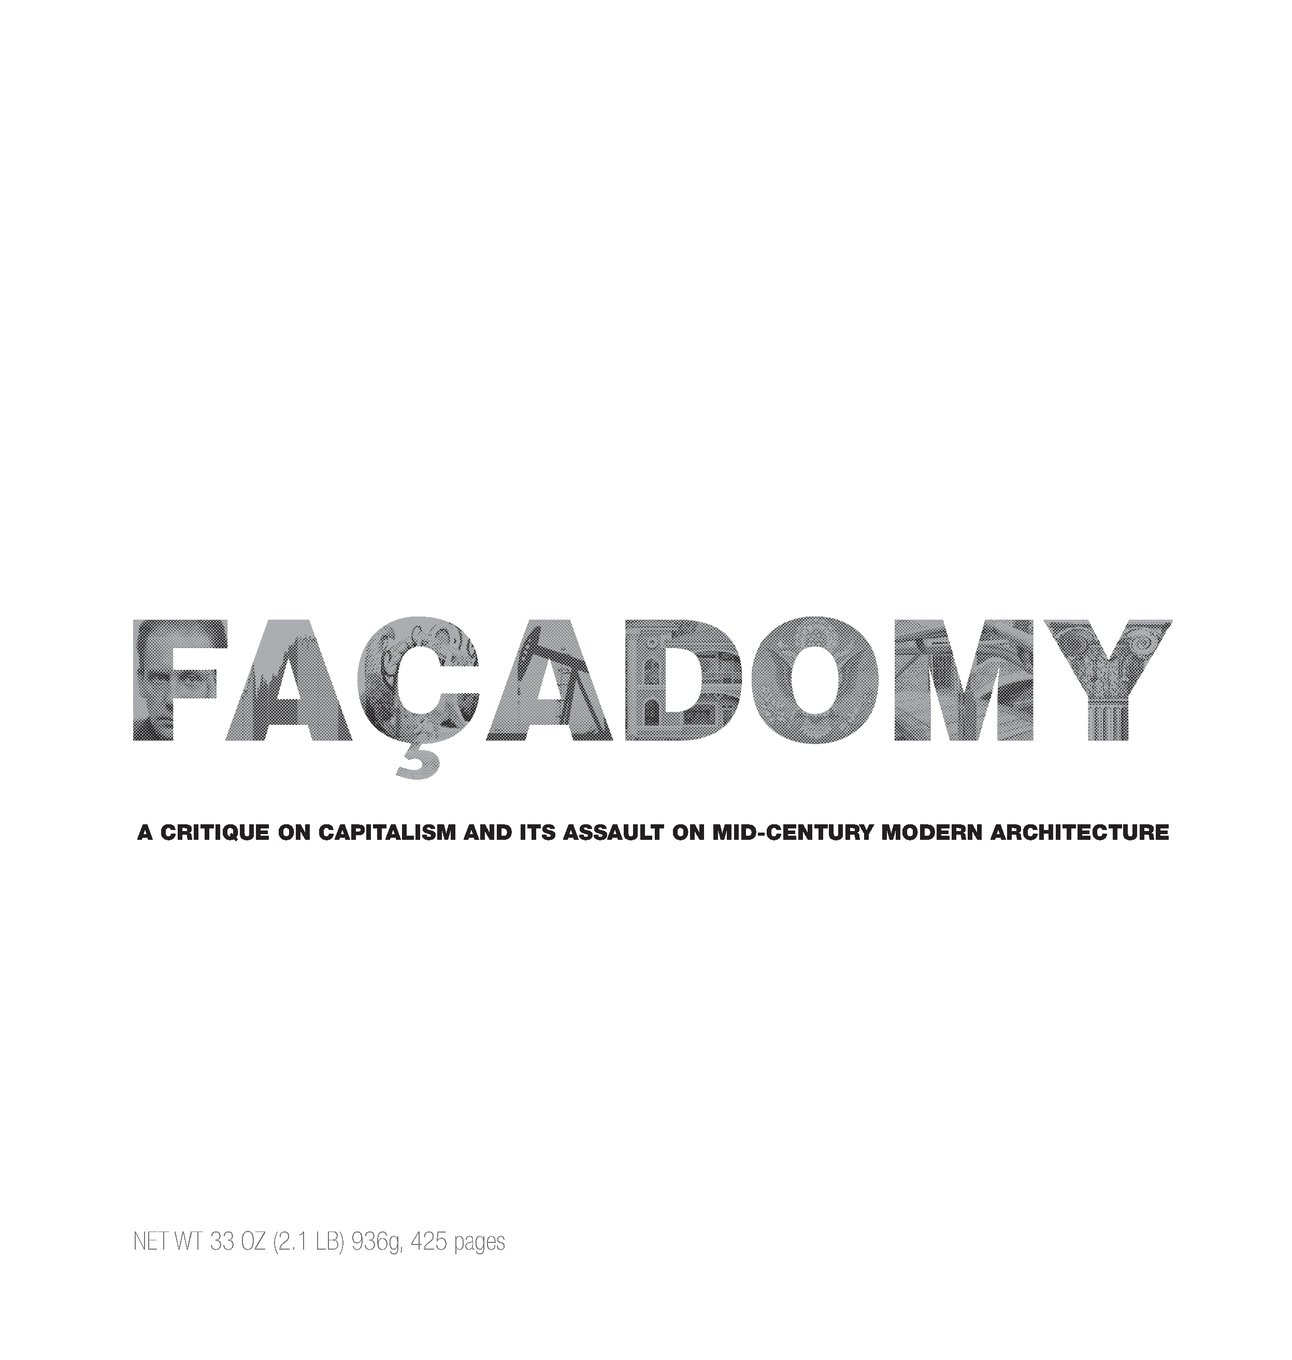 Facadomy: A Critique on Capitalism and Its Assault on Mid-Century Modern Architecture